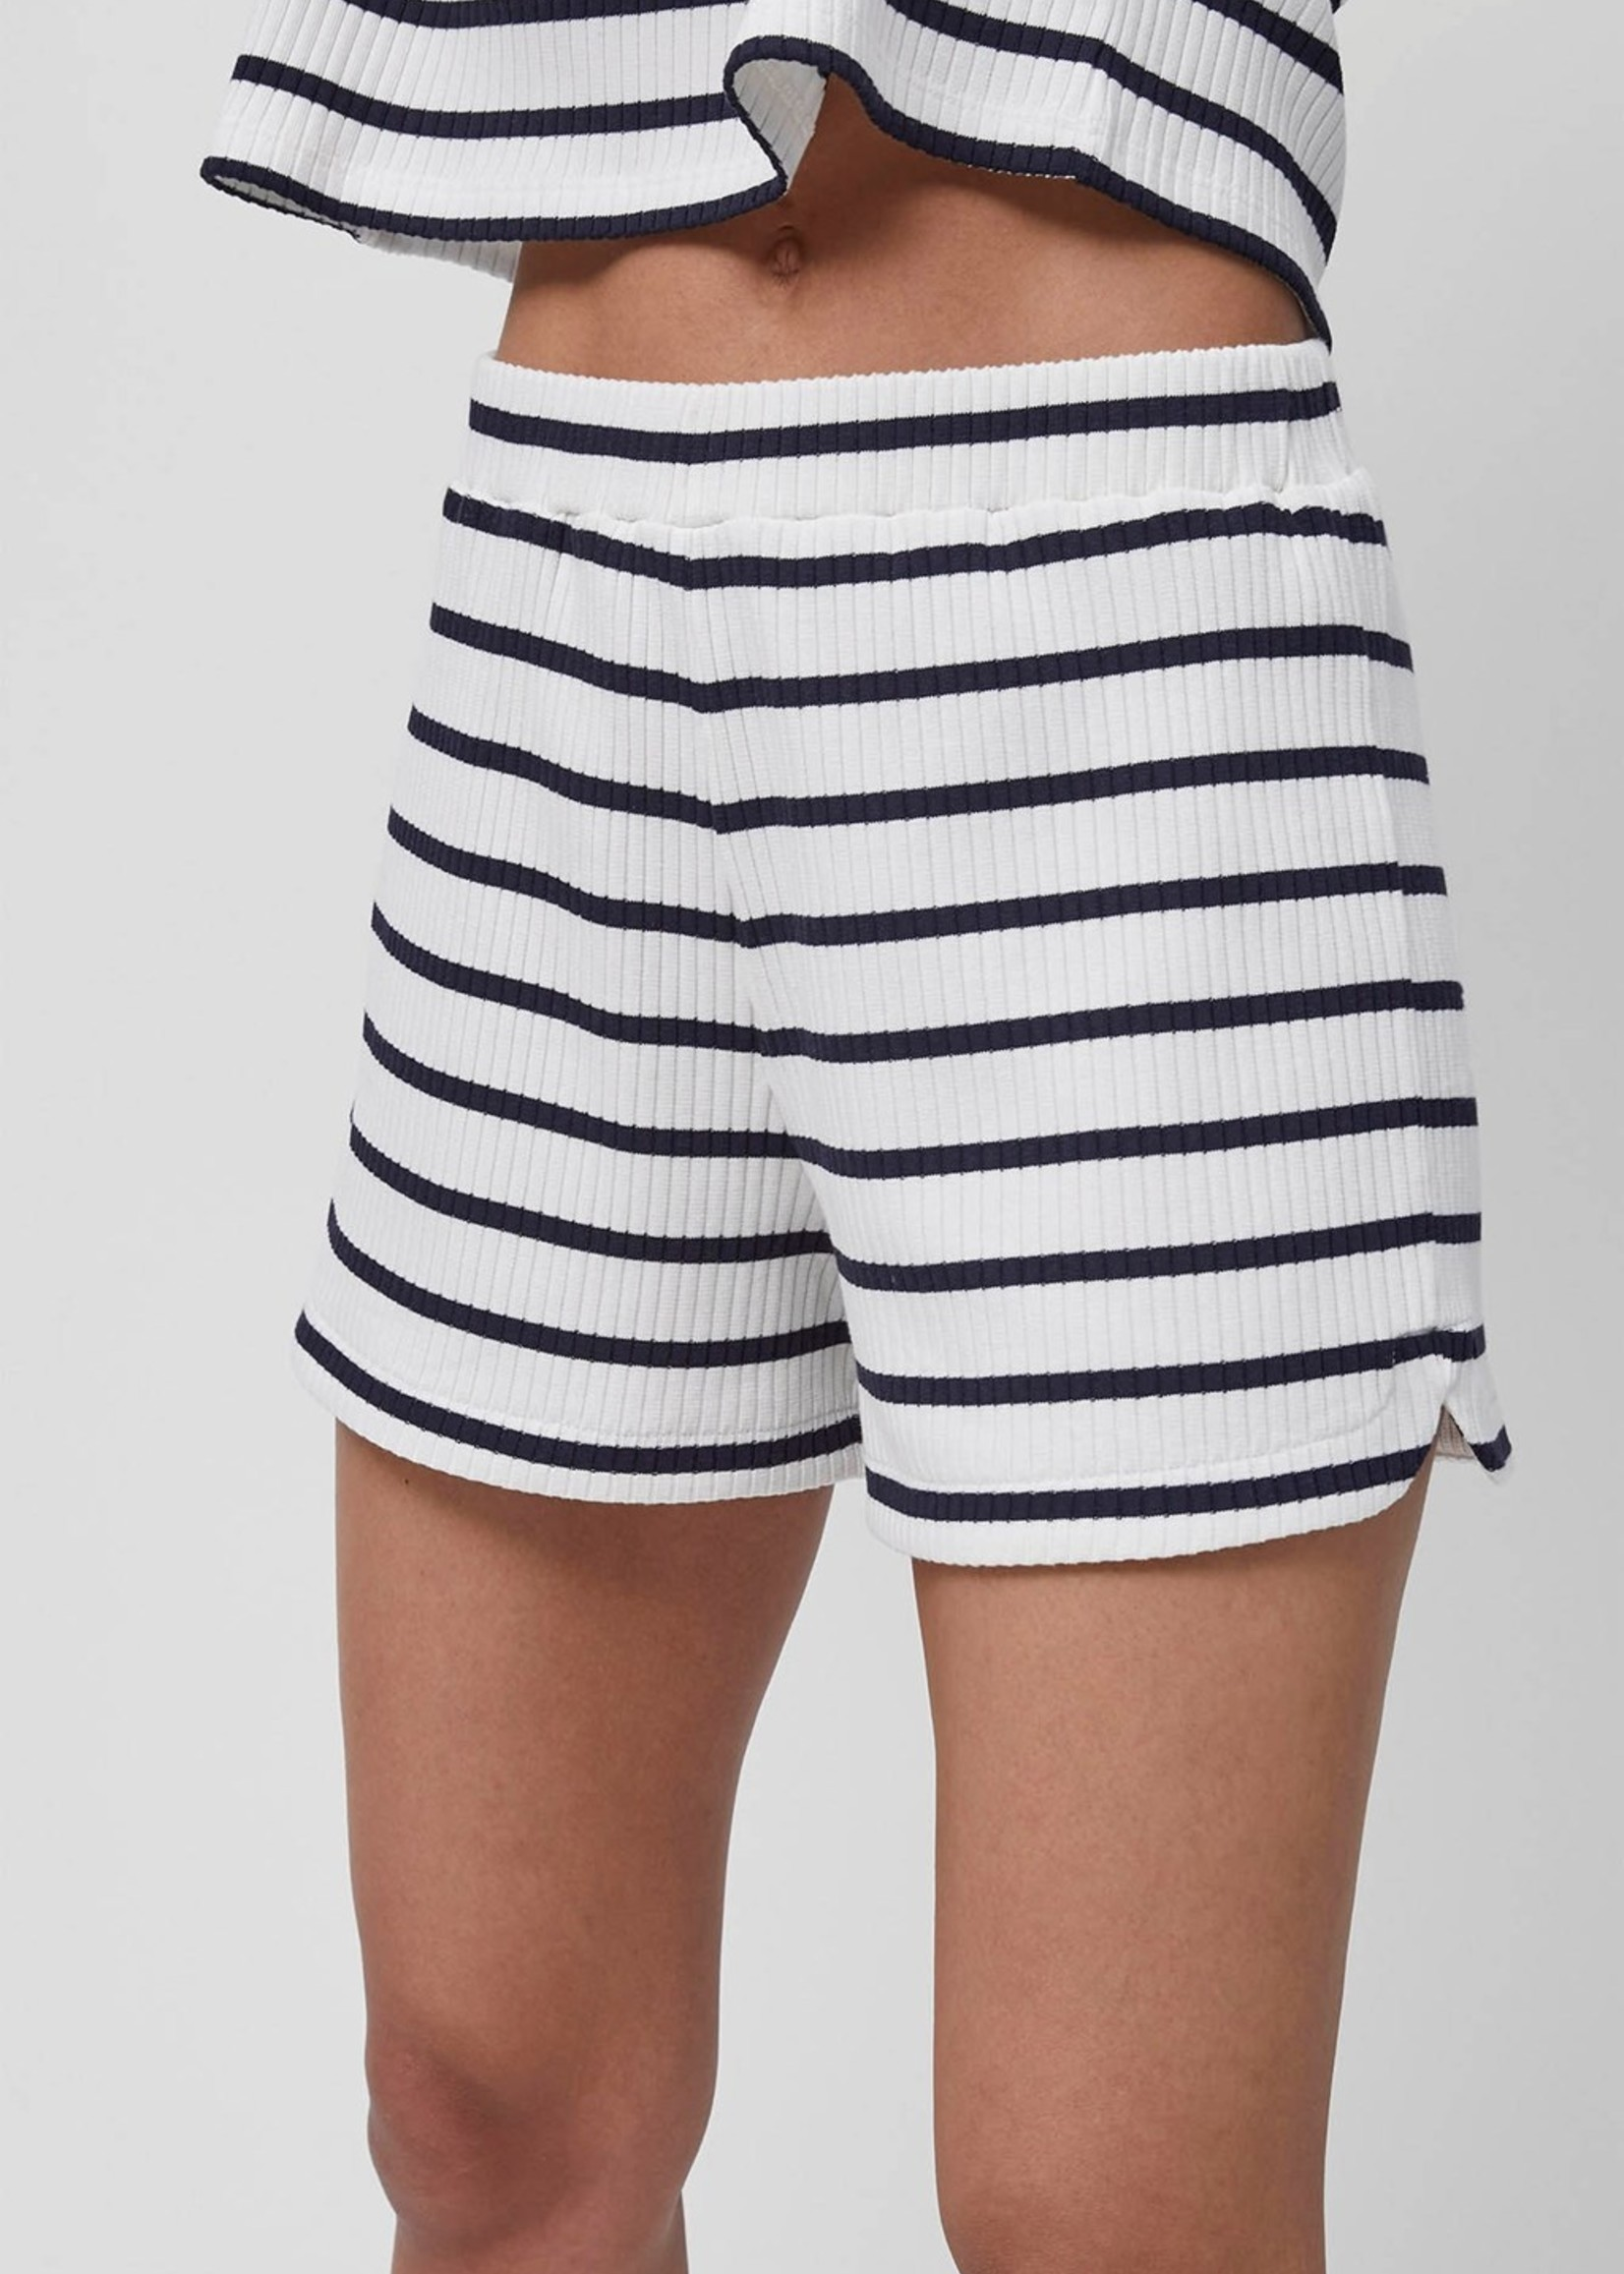 French Connection French Connection Tommy Rib Shorts